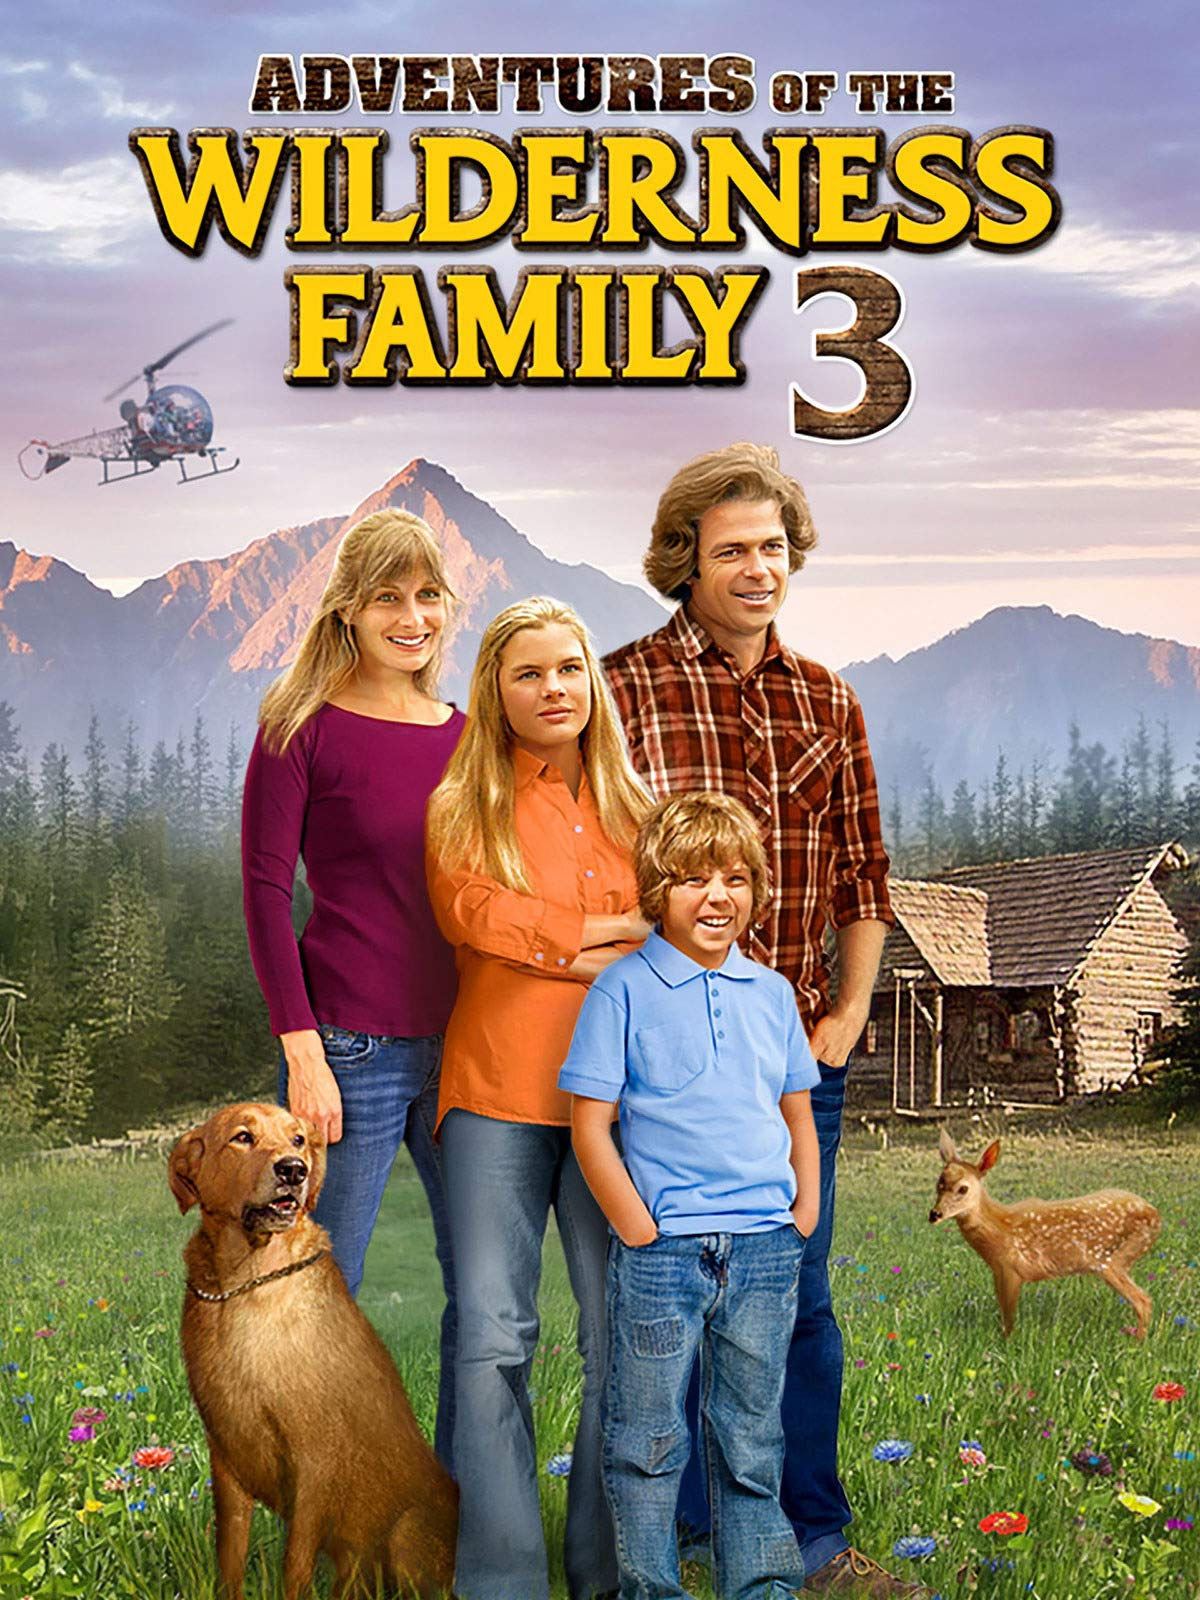 Adventures of the Wilderness Family 3